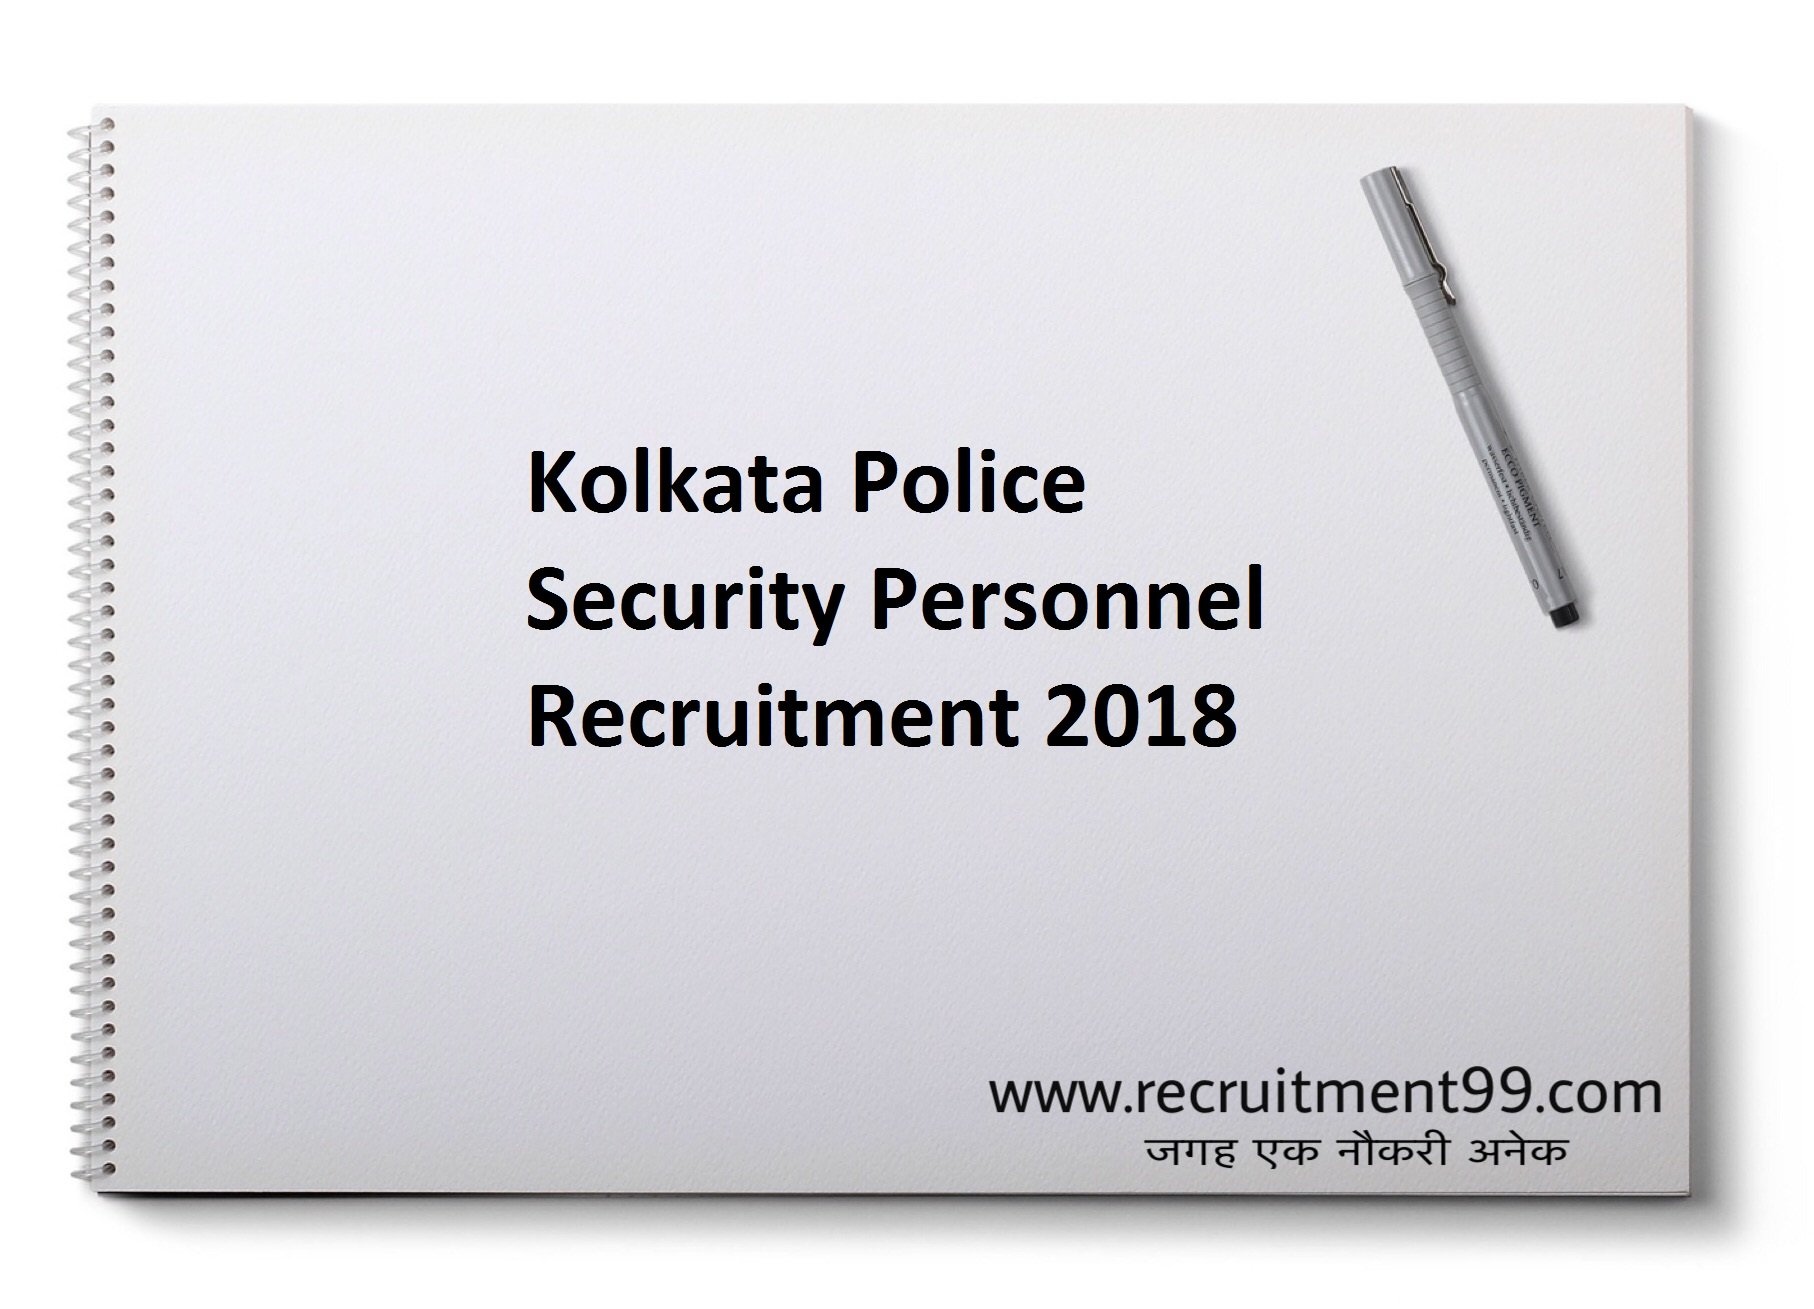 Kolkata Police Security Personnel Recruitment Hall Ticket Result 2018